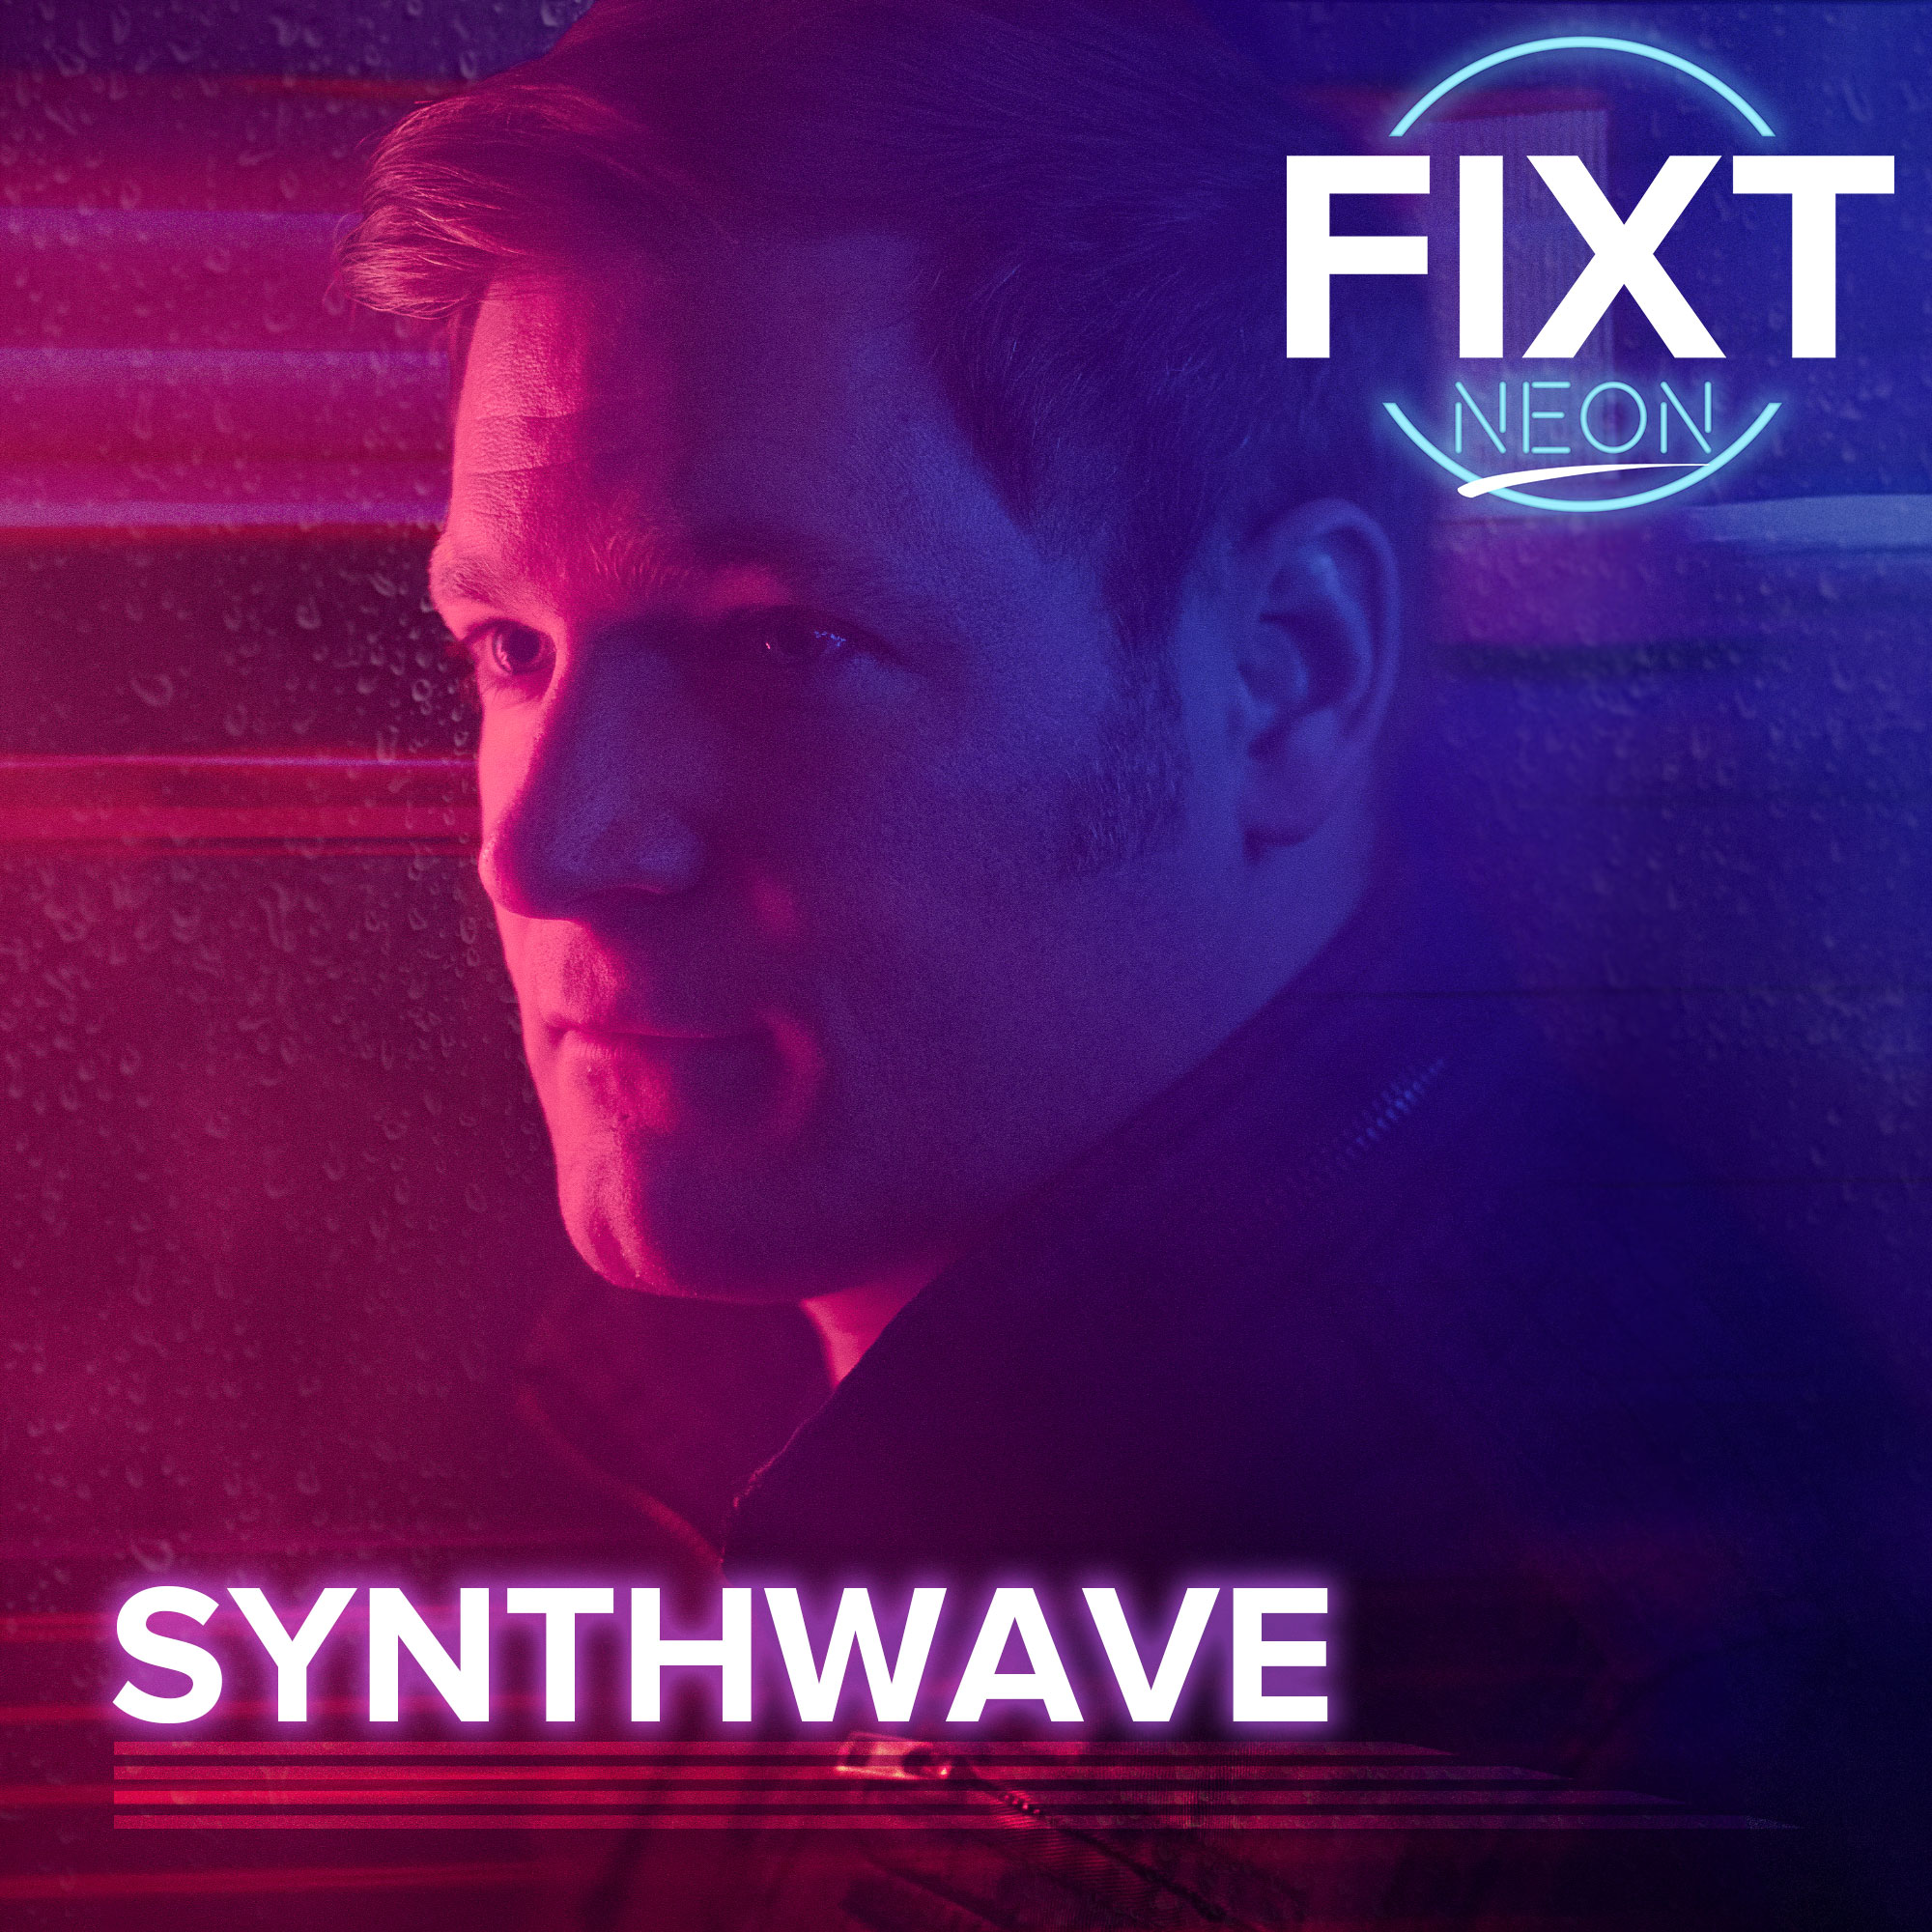 FiXT Neon: Synthwave  Image